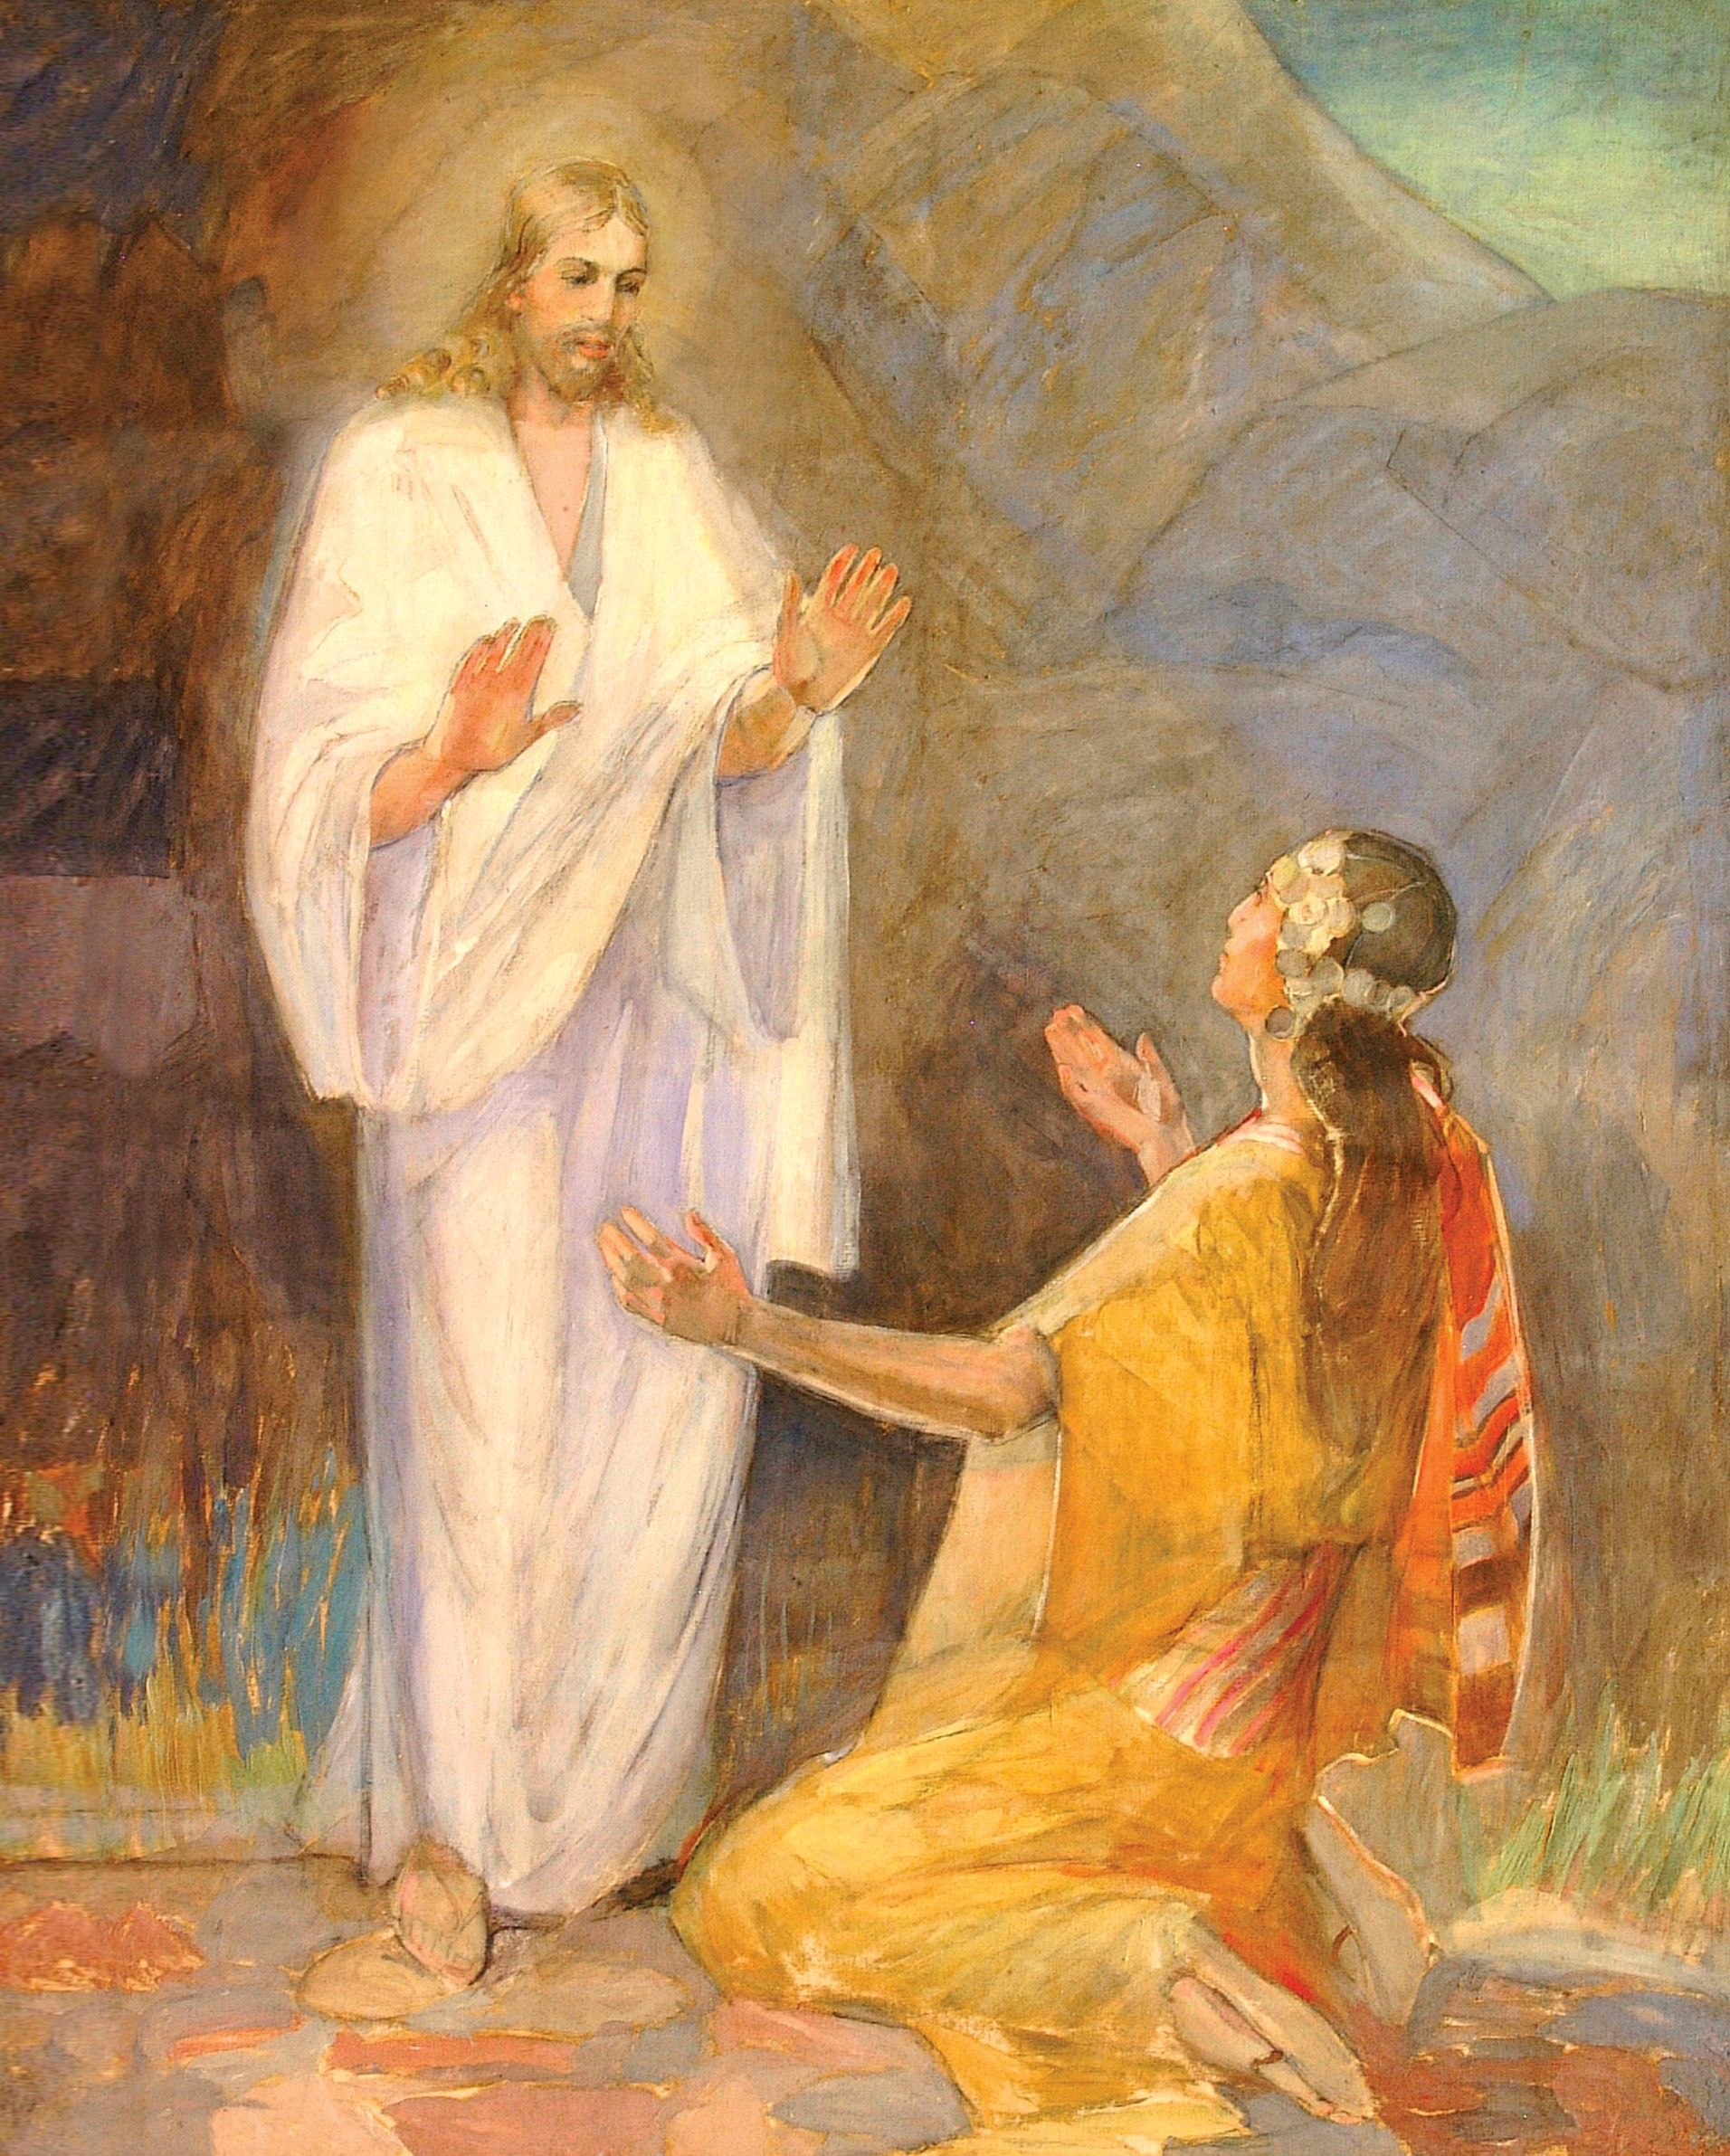 A painting by Minerva K. Teichert of the resurrected Christ appearing before Mary Magdalene, who is kneeling at His feet.